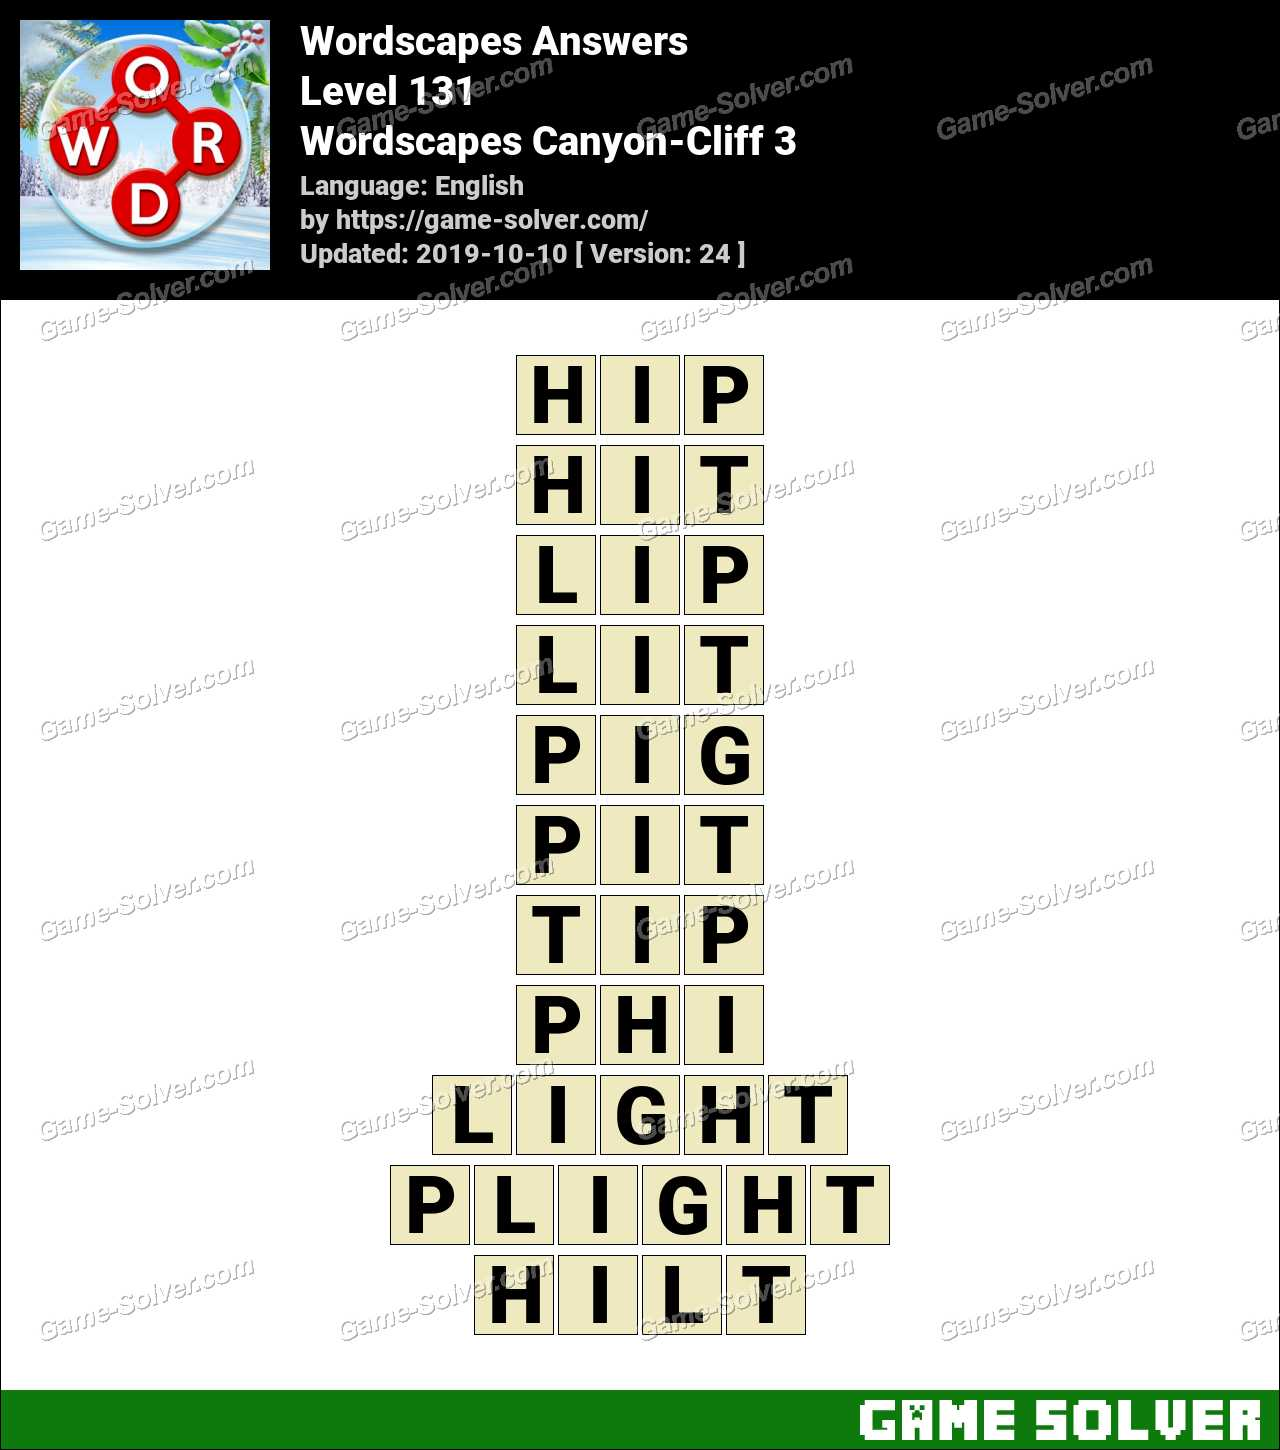 Wordscapes Canyon-Cliff 3 Answers